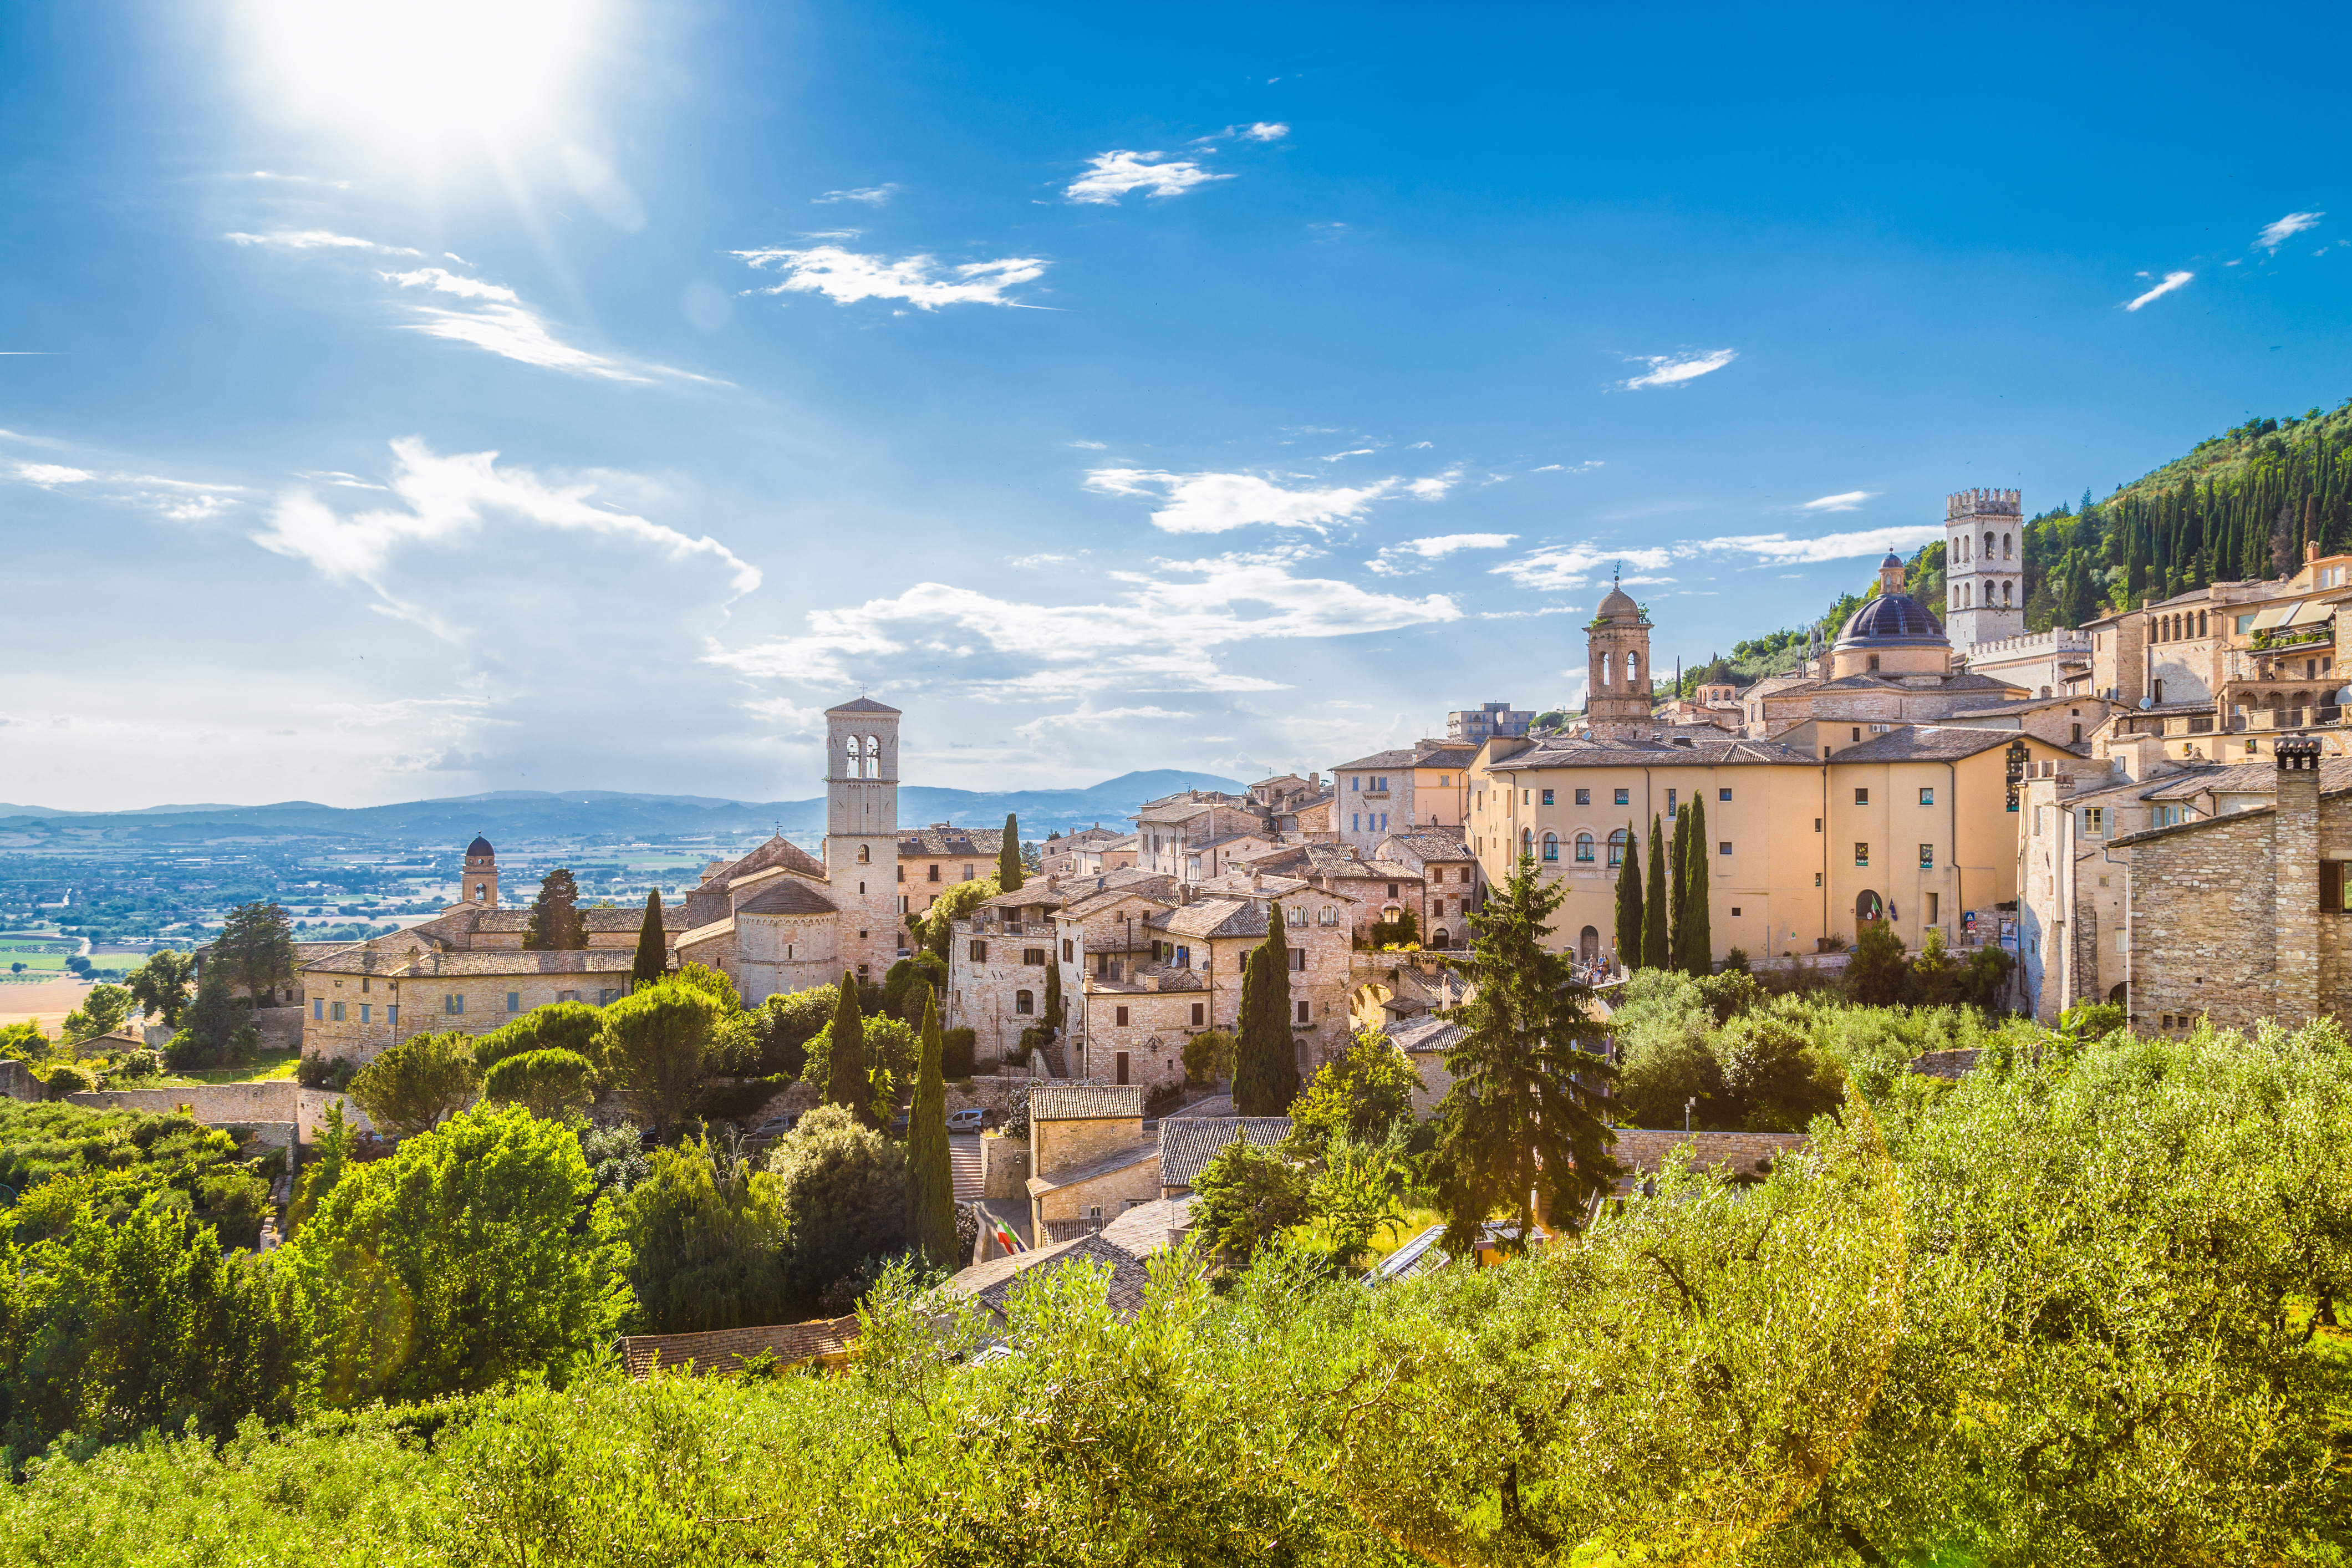 Assisi Old Town